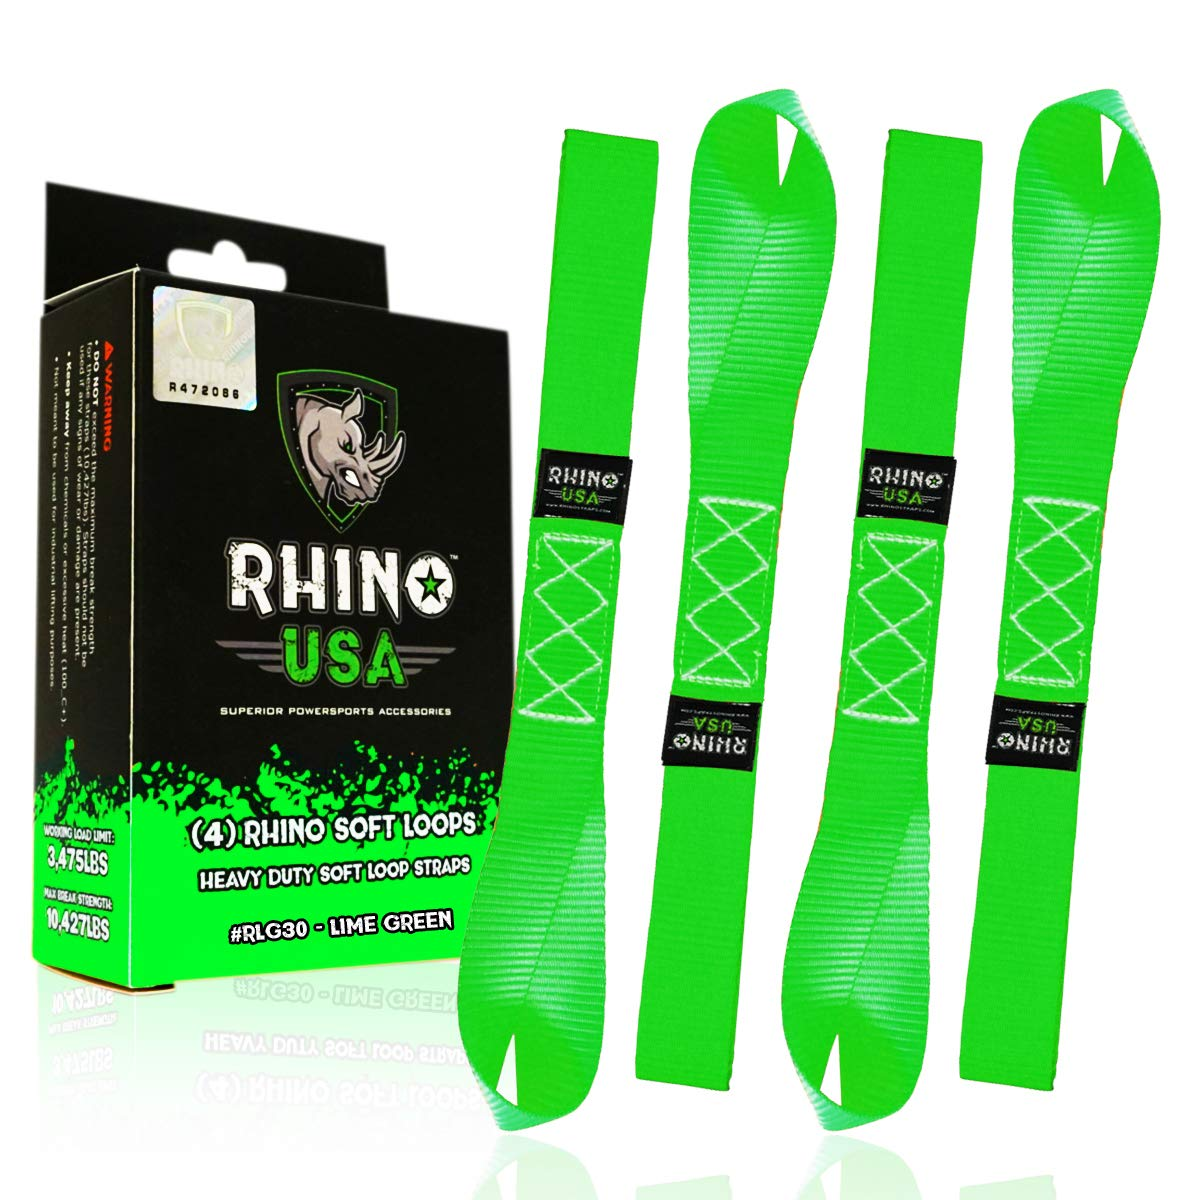 RHINO USA Soft Loop Motorcycle Tie Down Straps - Guaranteed 10,427lb Max Break Strength, Heavy Duty Tiedown Loops for Secure and Confident Trailering of Motorcycles, Dirtbikes, ATV, UTV (Green 4-Pack) by Rhino USA